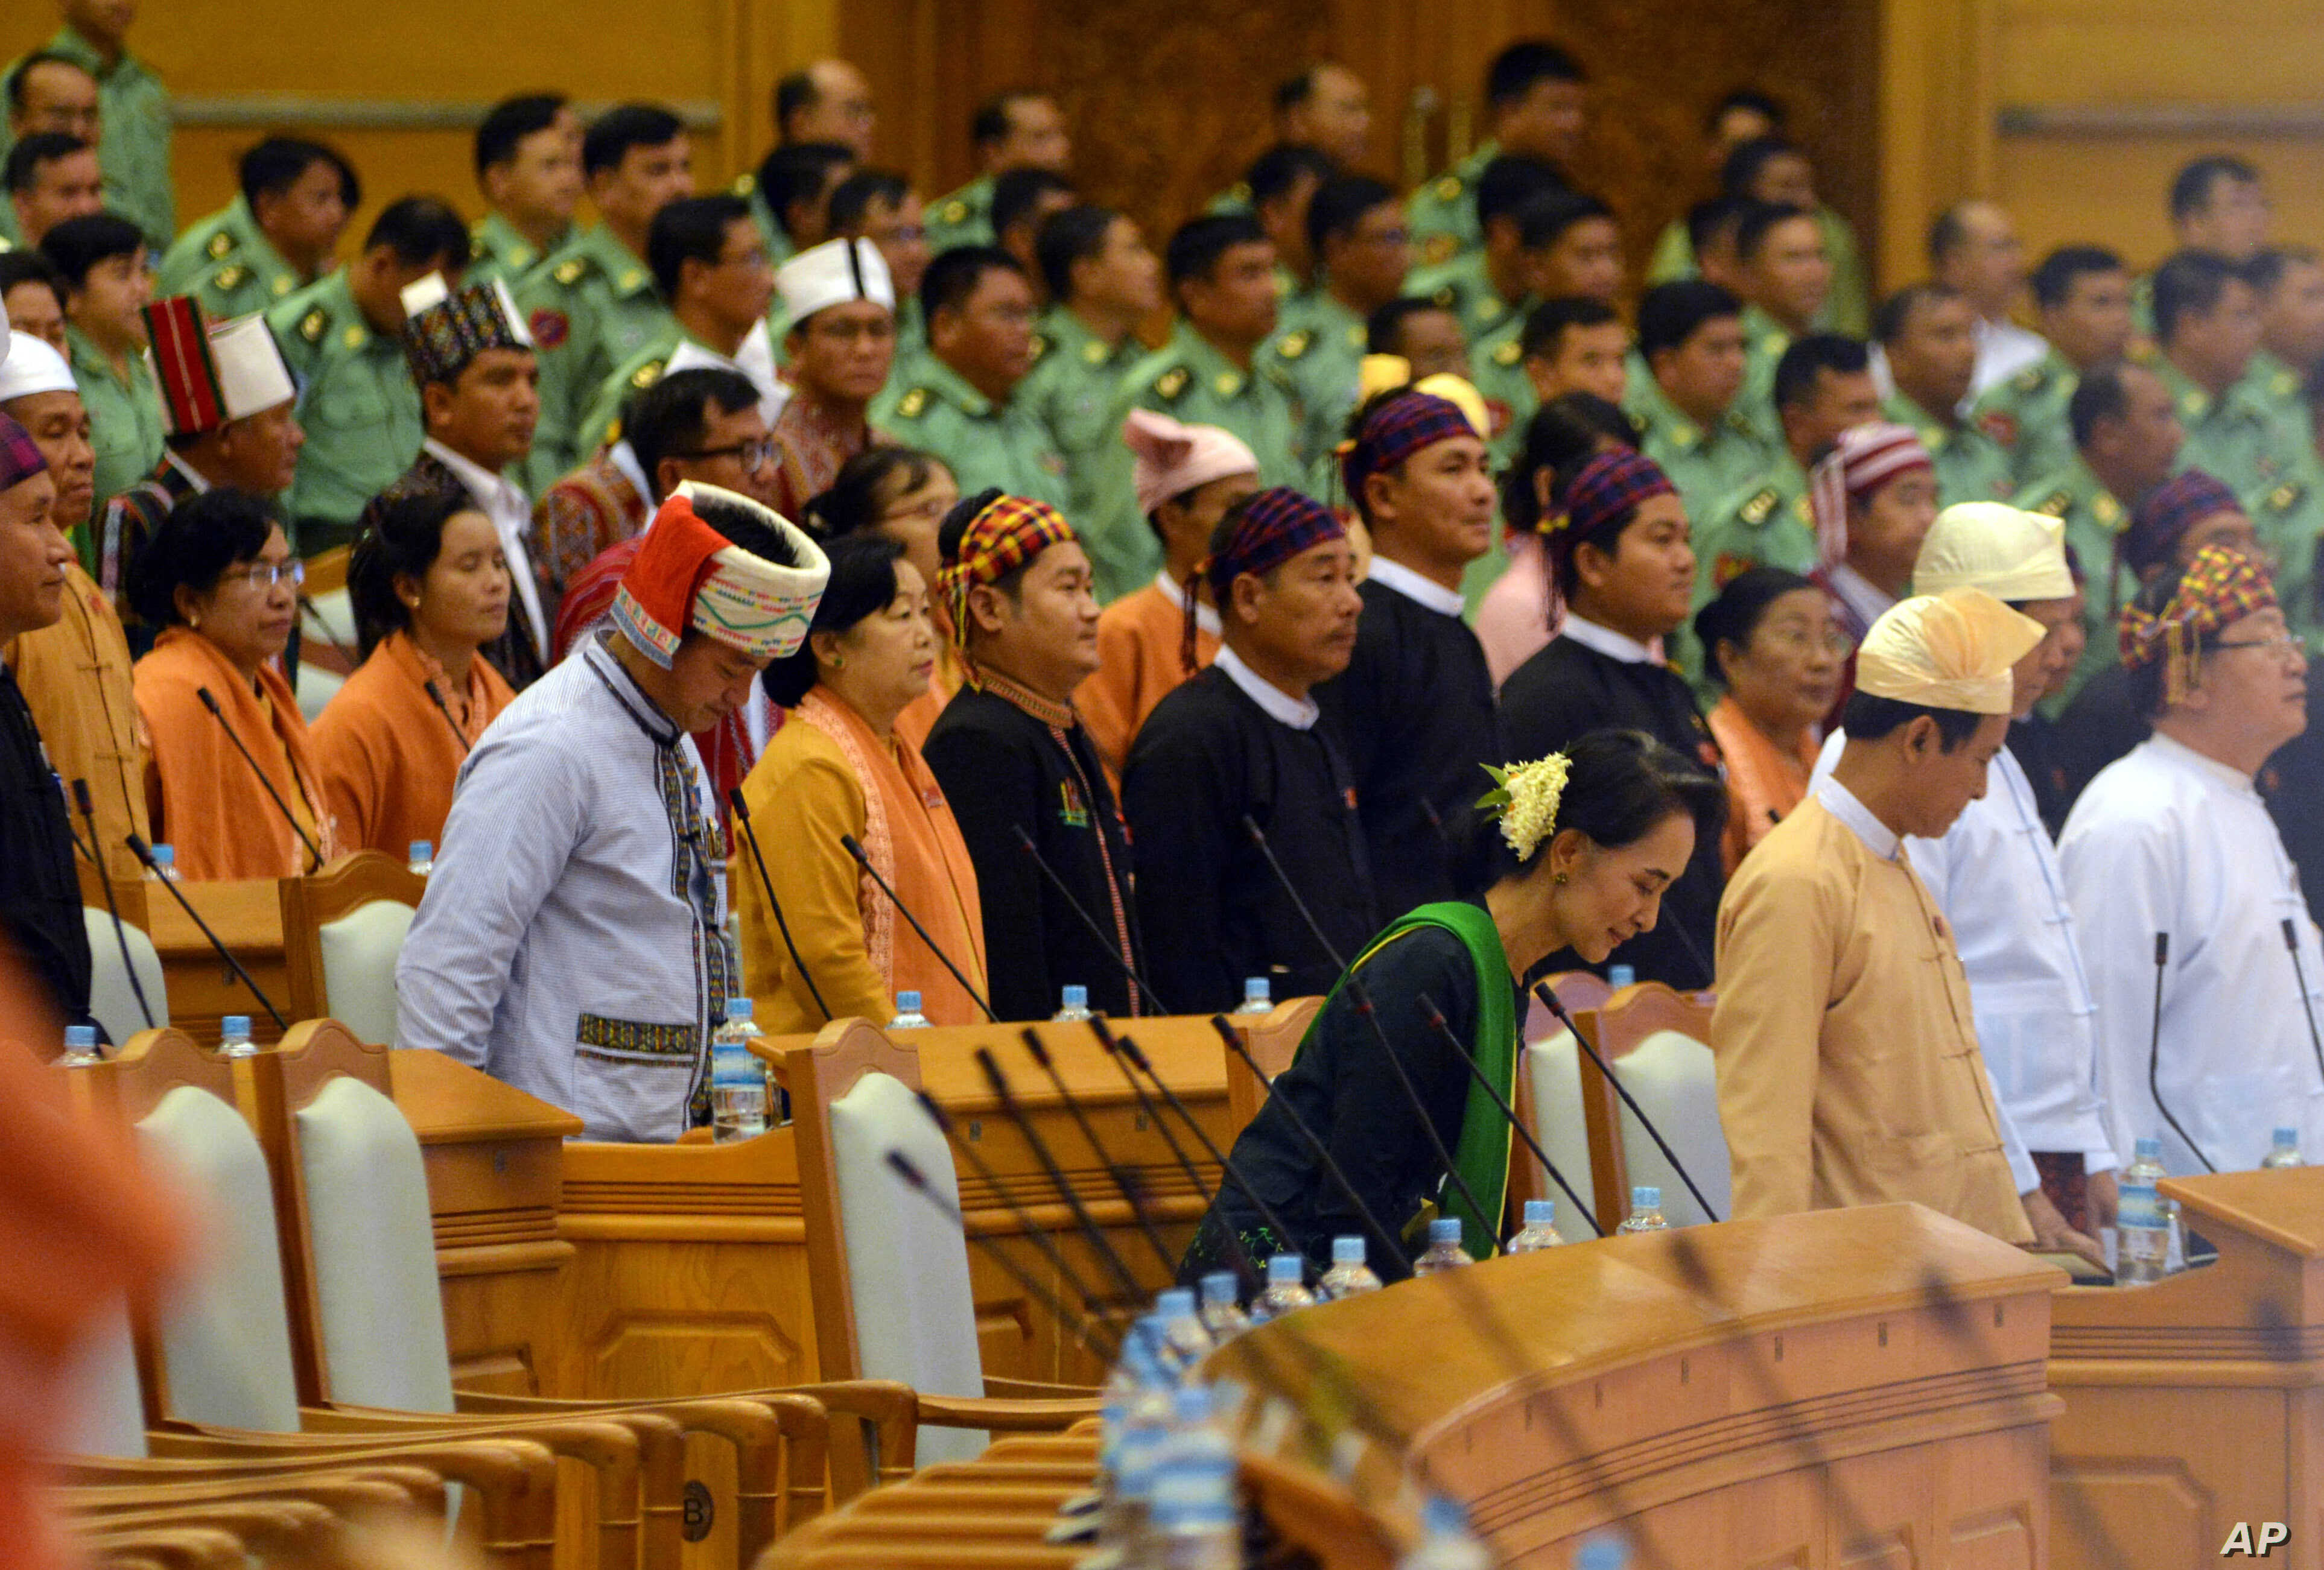 Myanmar's Parliament Moves Up Date for Nominating President | Voice of America - English